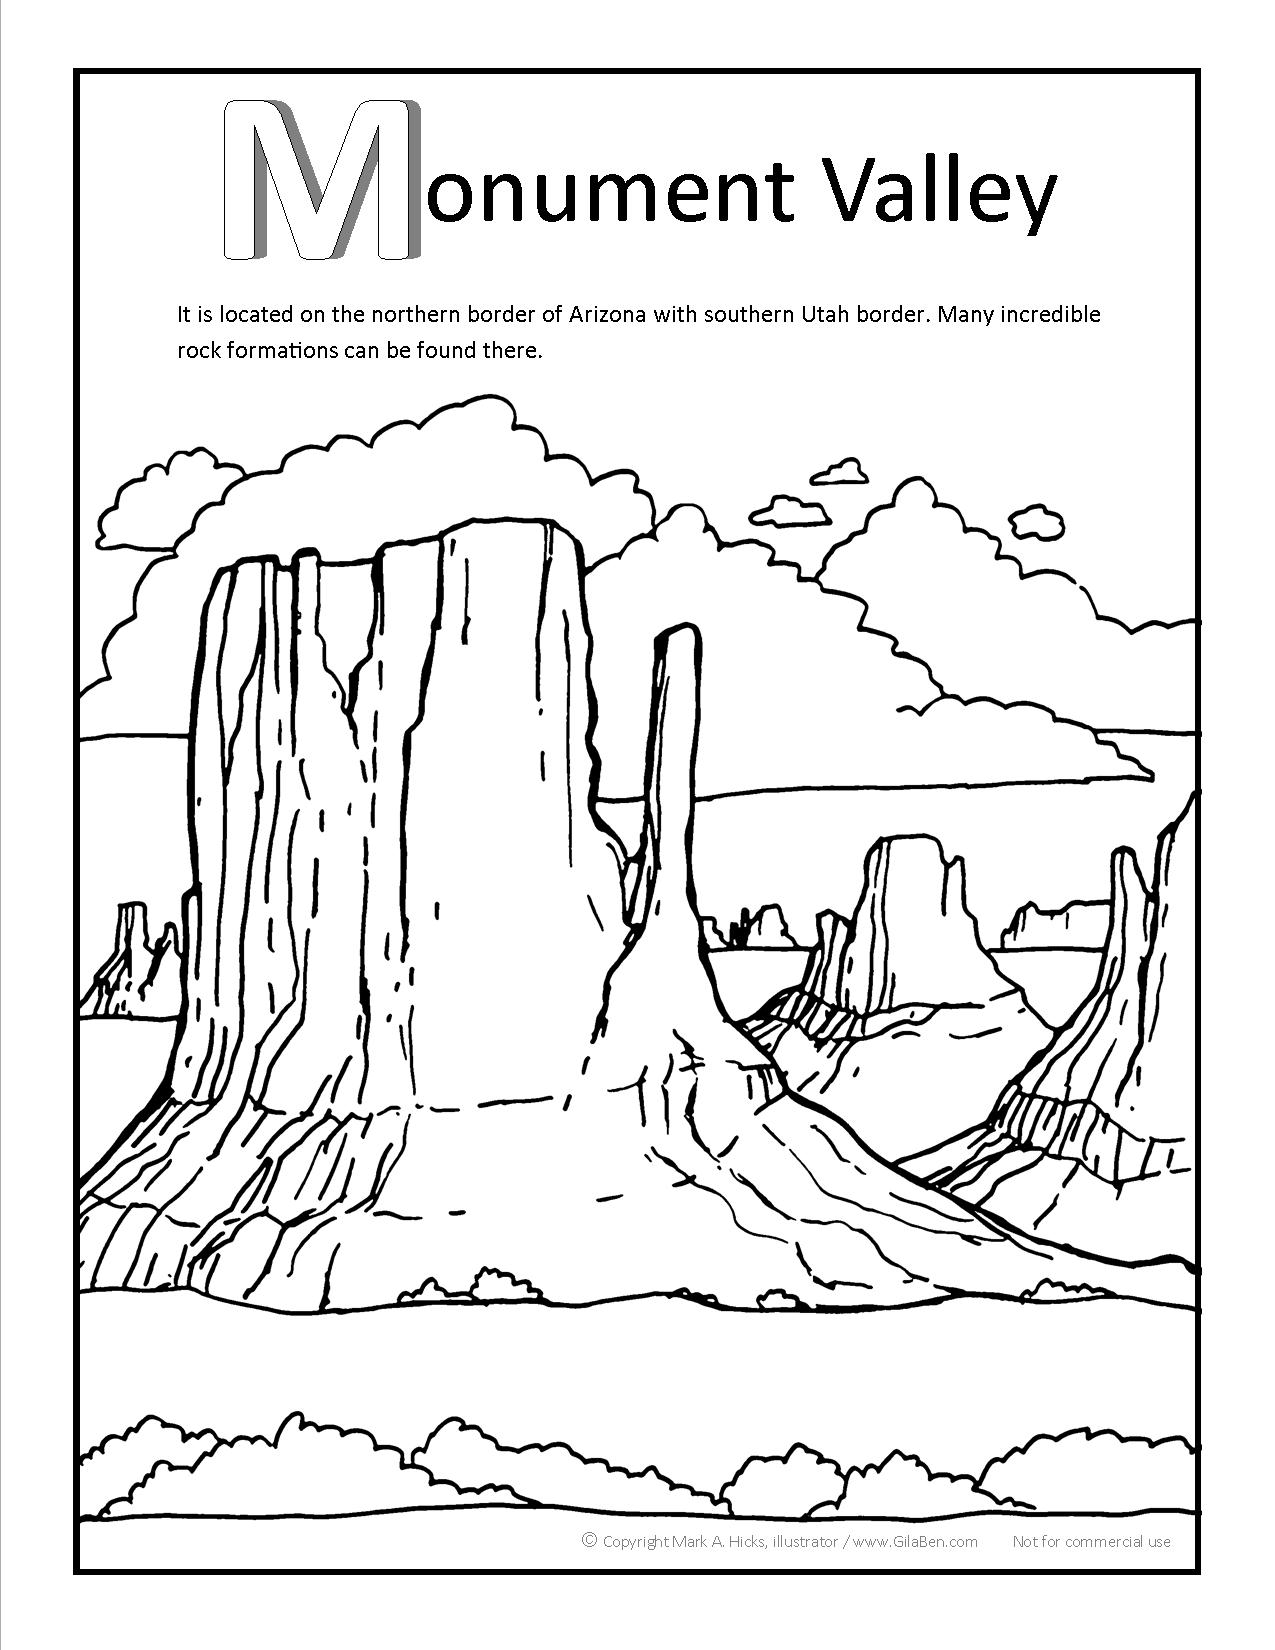 Valley coloring #5, Download drawings